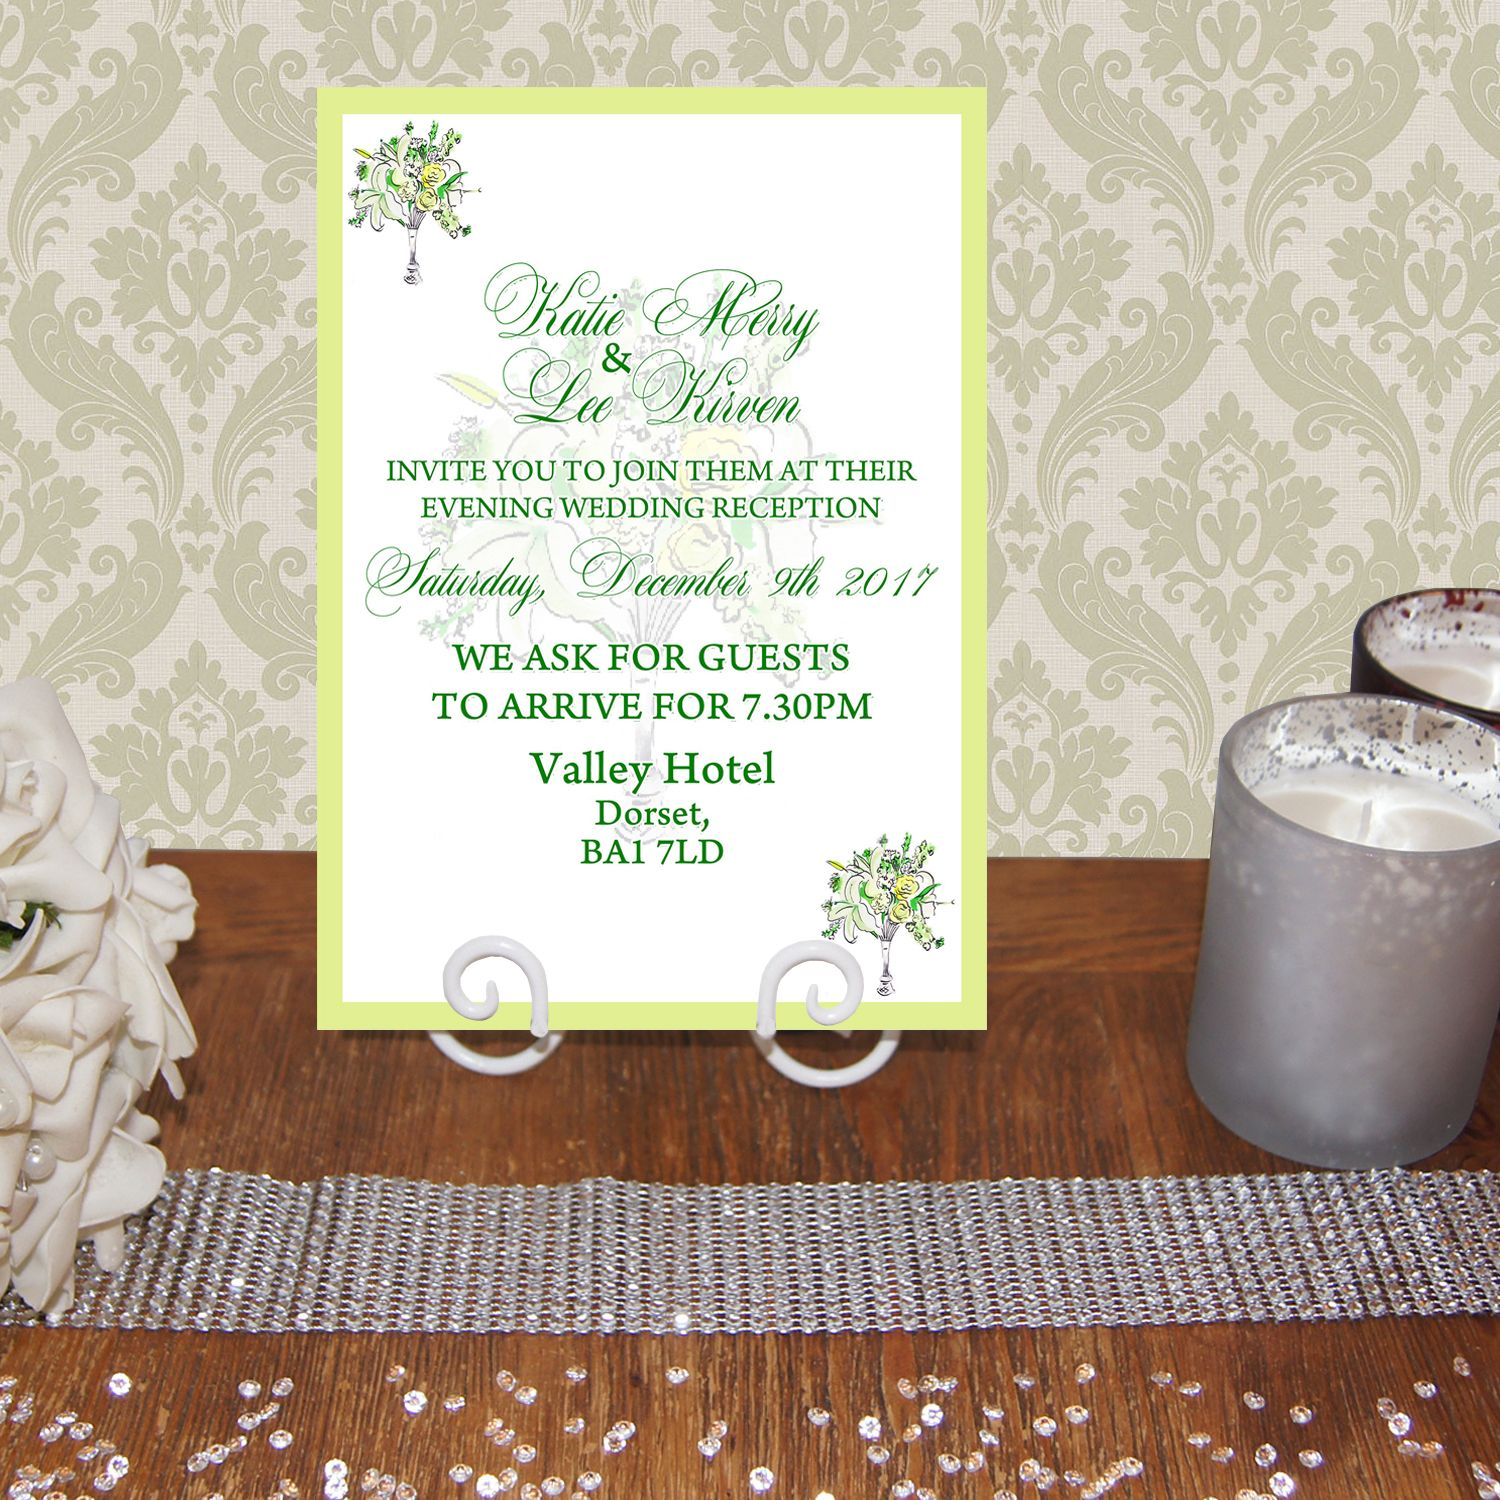 From I will To I Do. Quality themed weddings. Exactly what you want ...